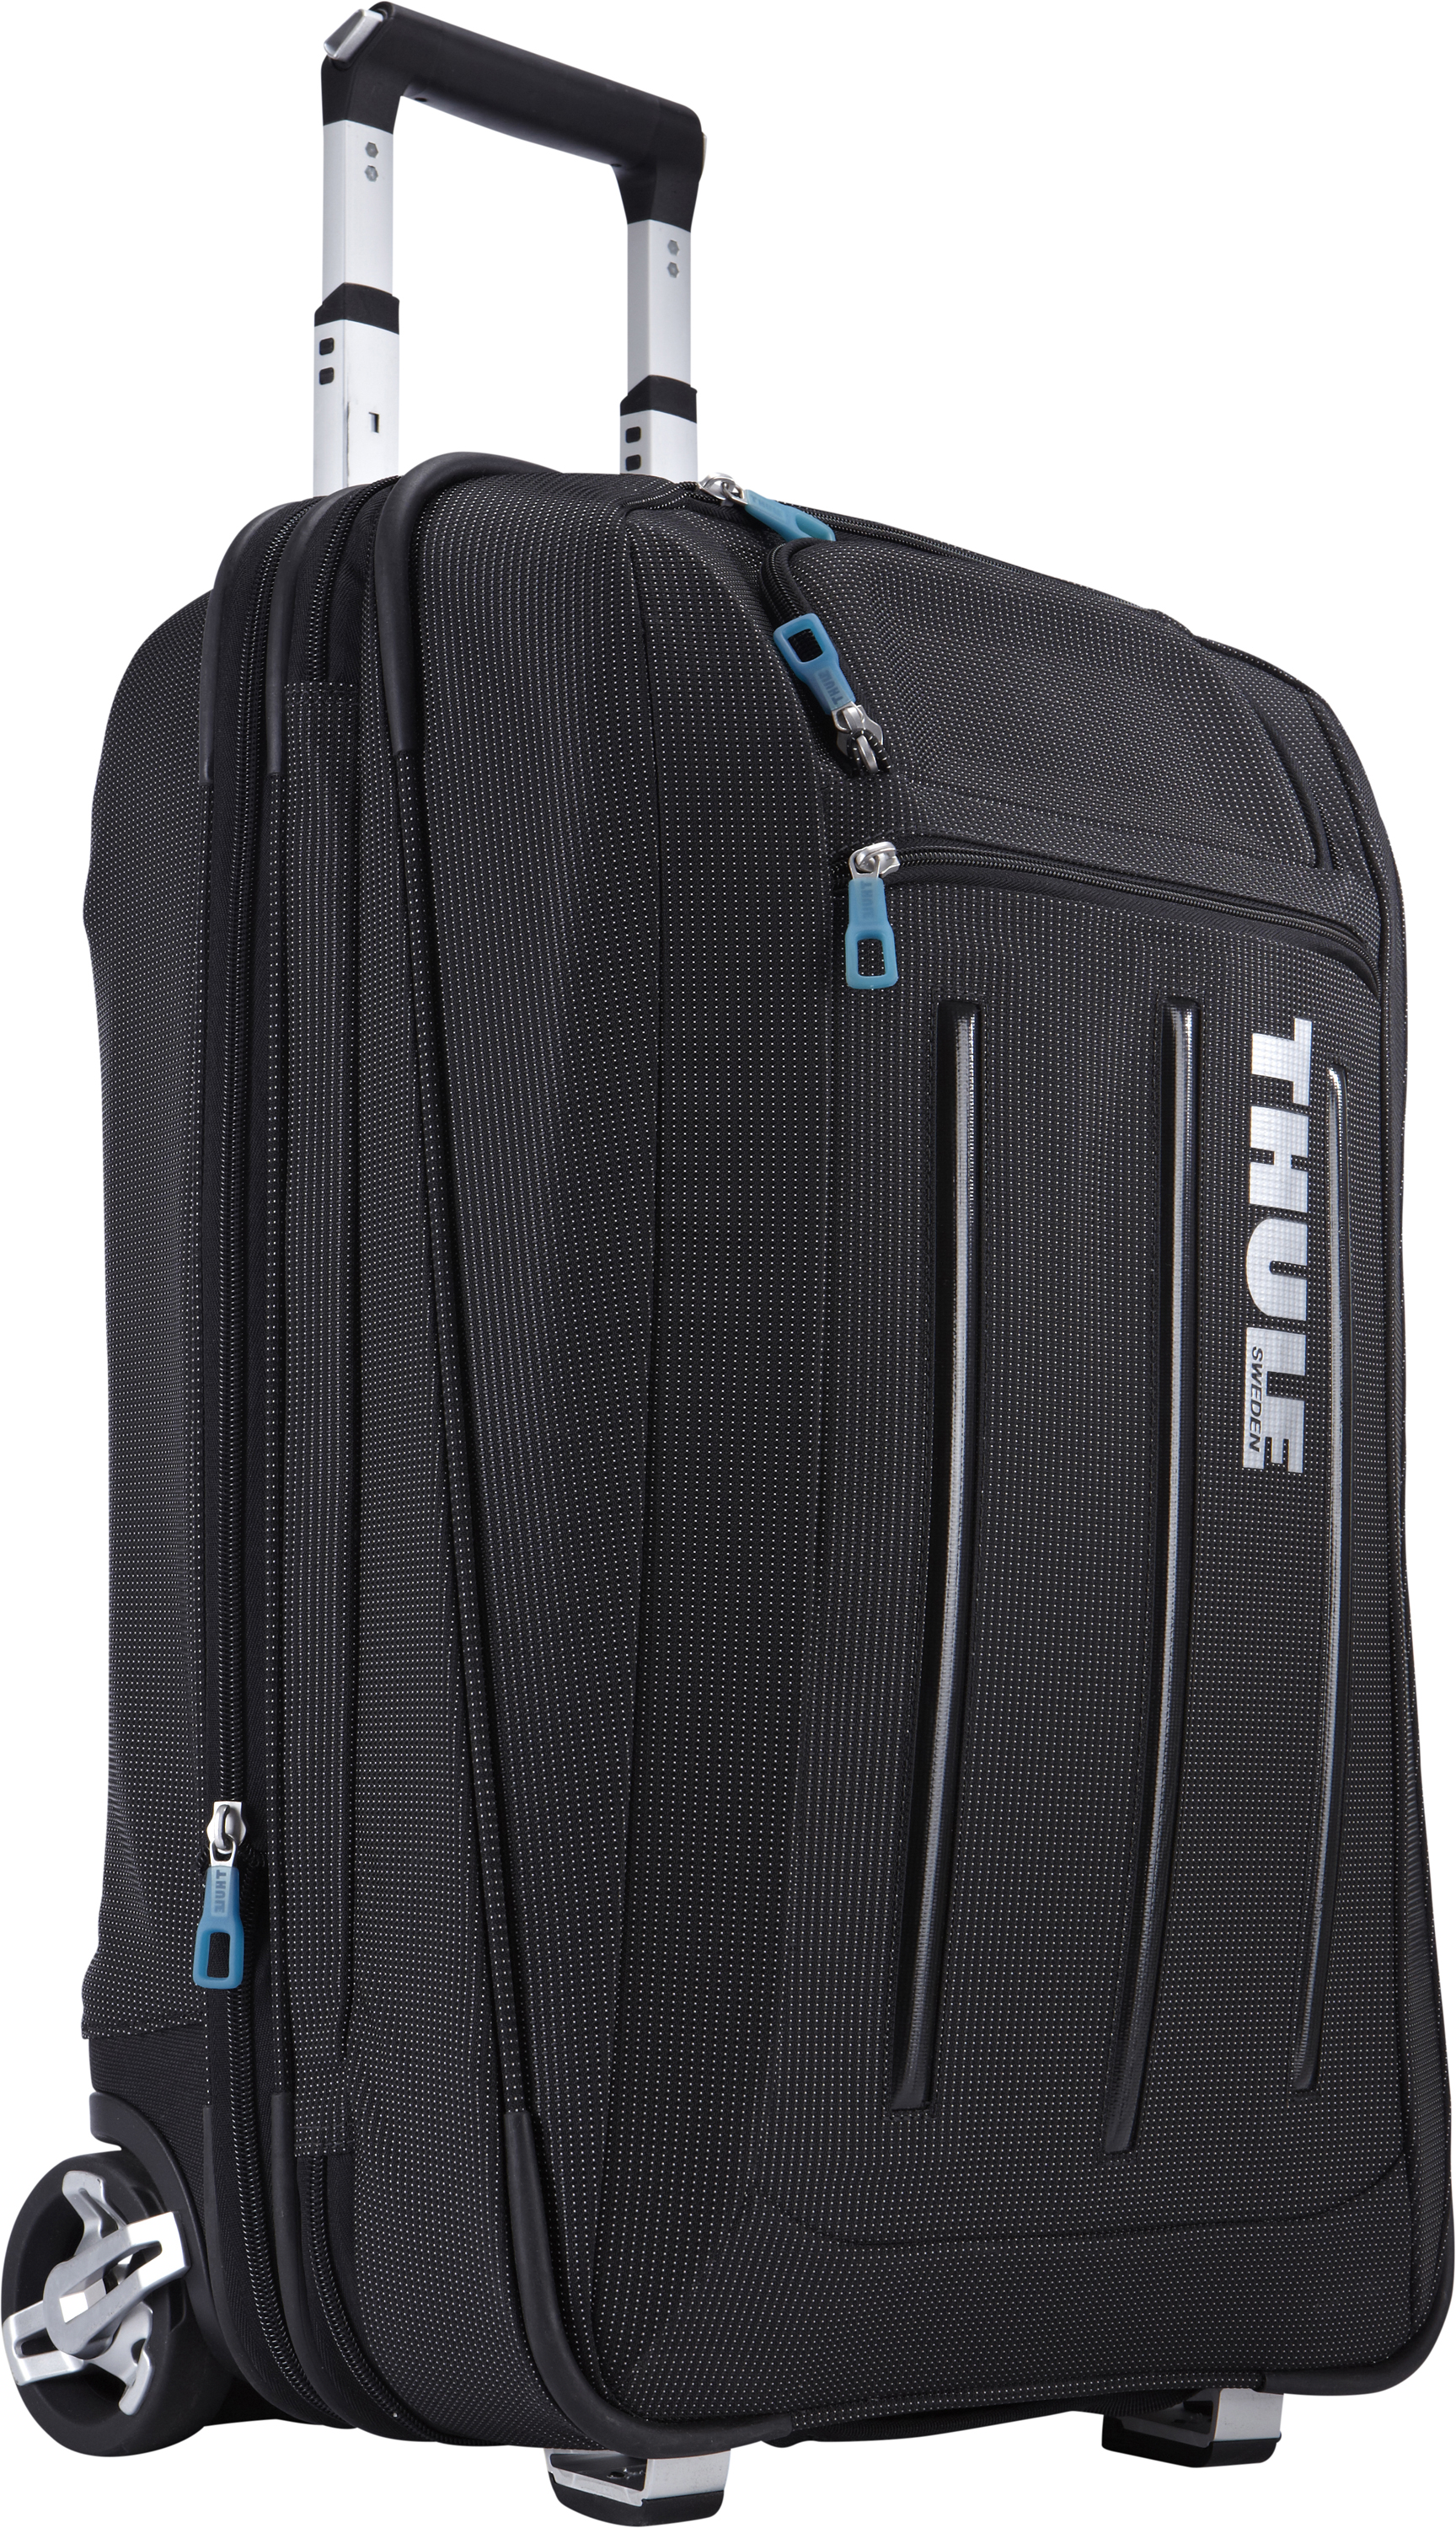 REVIEWED: Thule Crossover Rolling 23″ Carry-On | TravGear.com